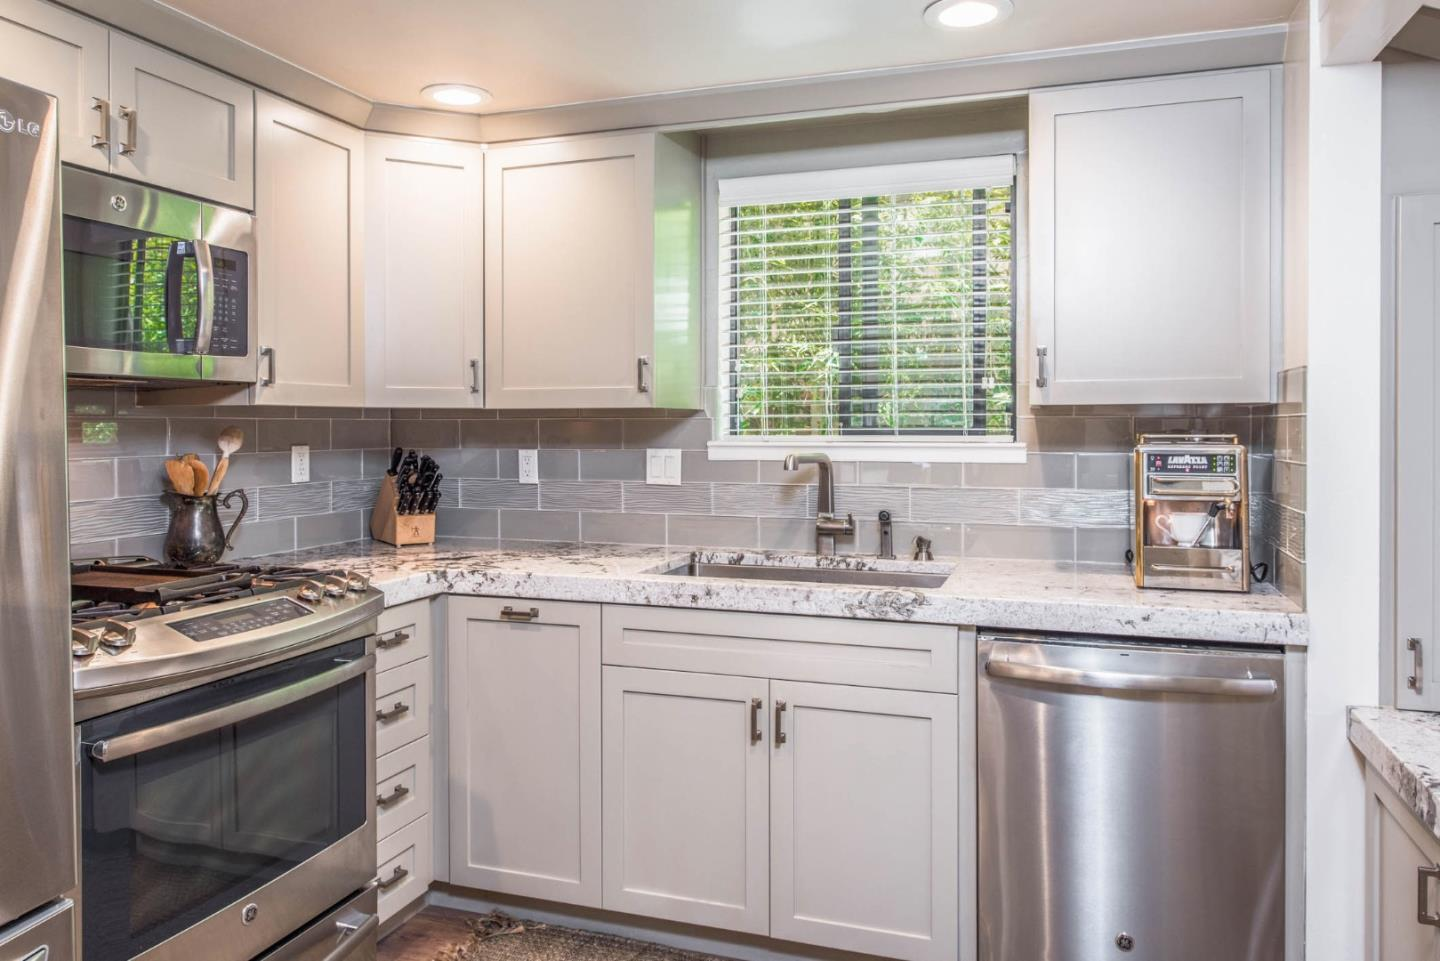 Additional photo for property listing at 24700 Camino Del Monte  Carmel, California 93923 United States